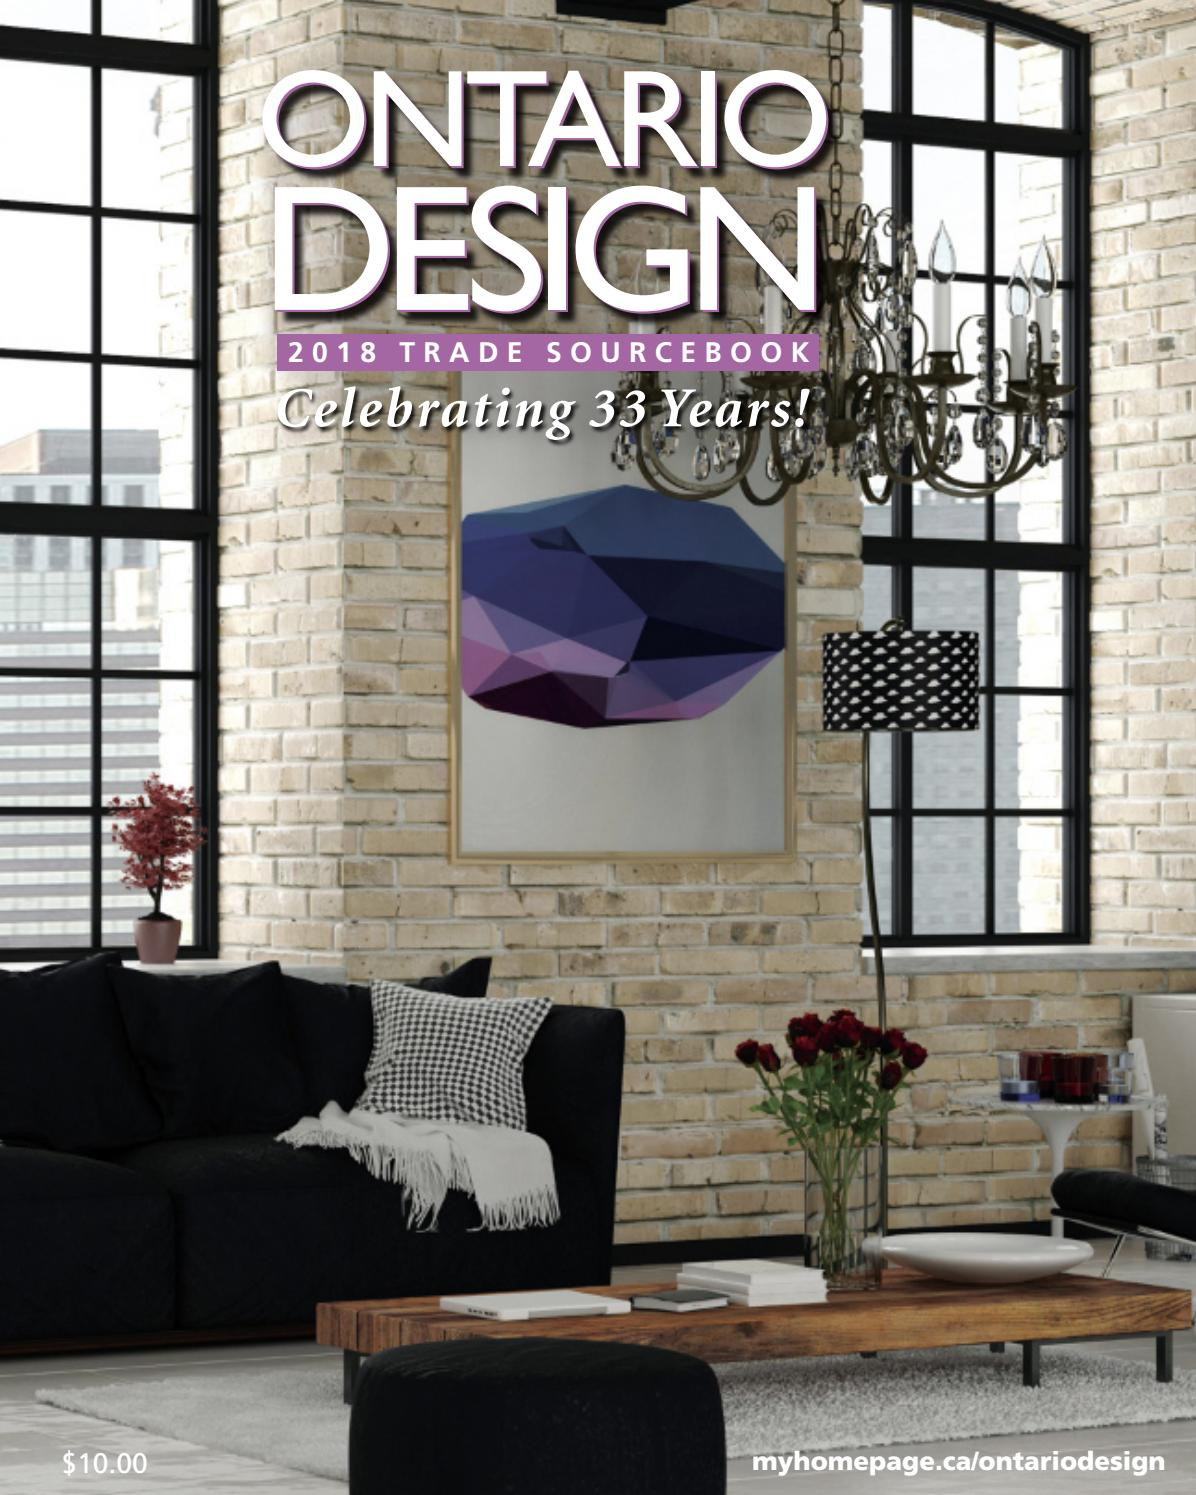 hardwood flooring durham region ontario of ontario design 2018 by homes publishing group issuu throughout page 1